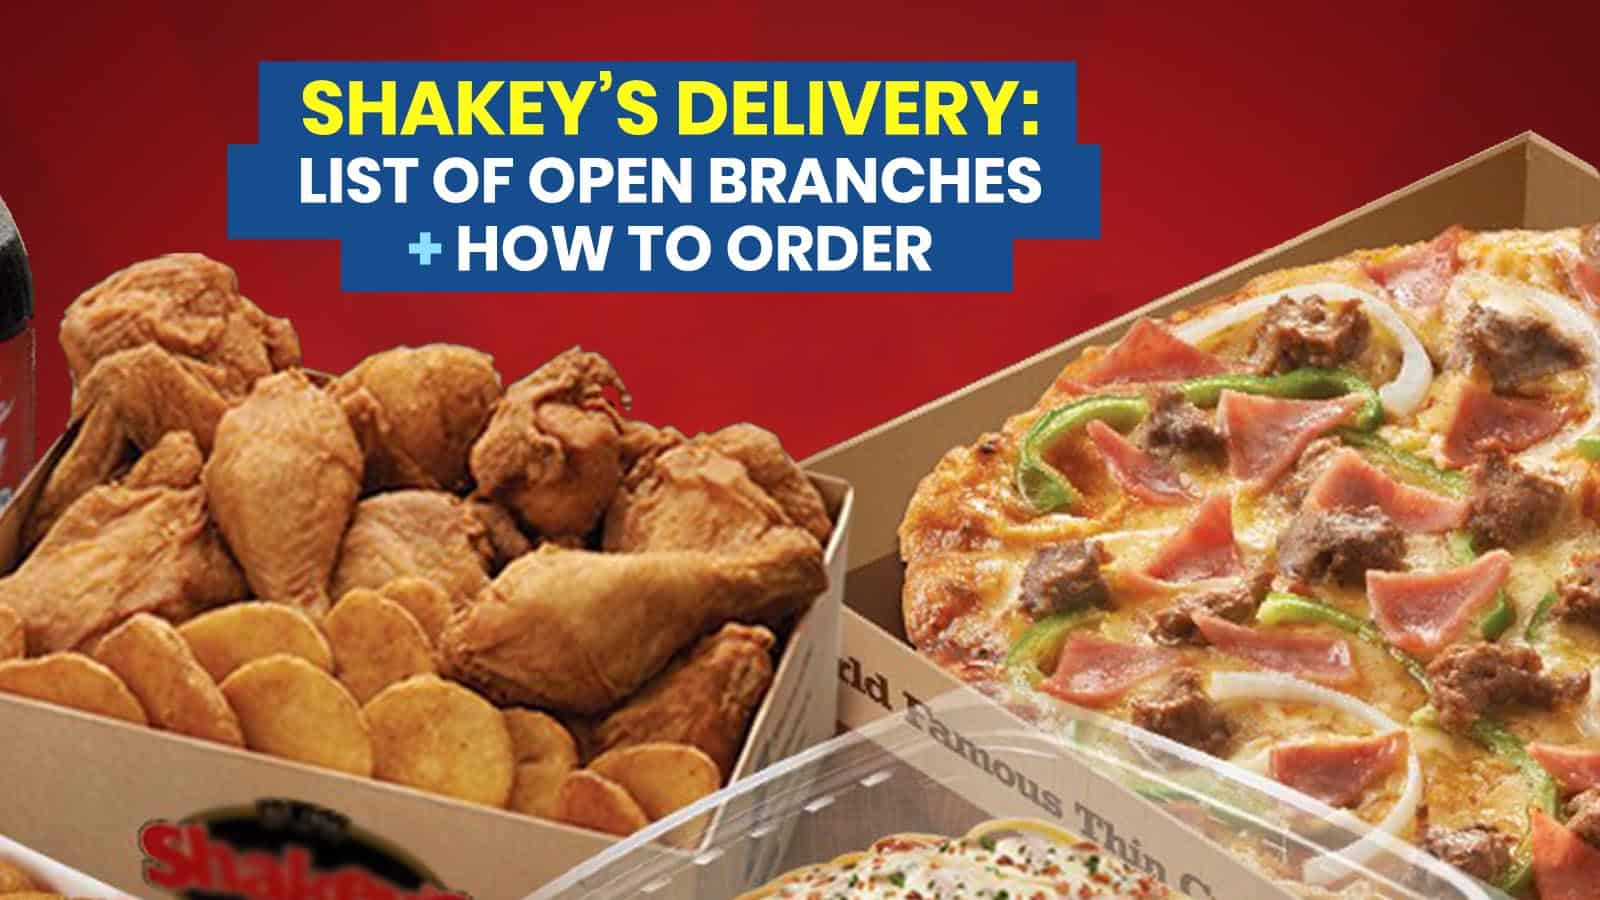 SHAKEY'S DELIVERY: List of Open Branches + Where to Buy Cook-at-Home MOJOS